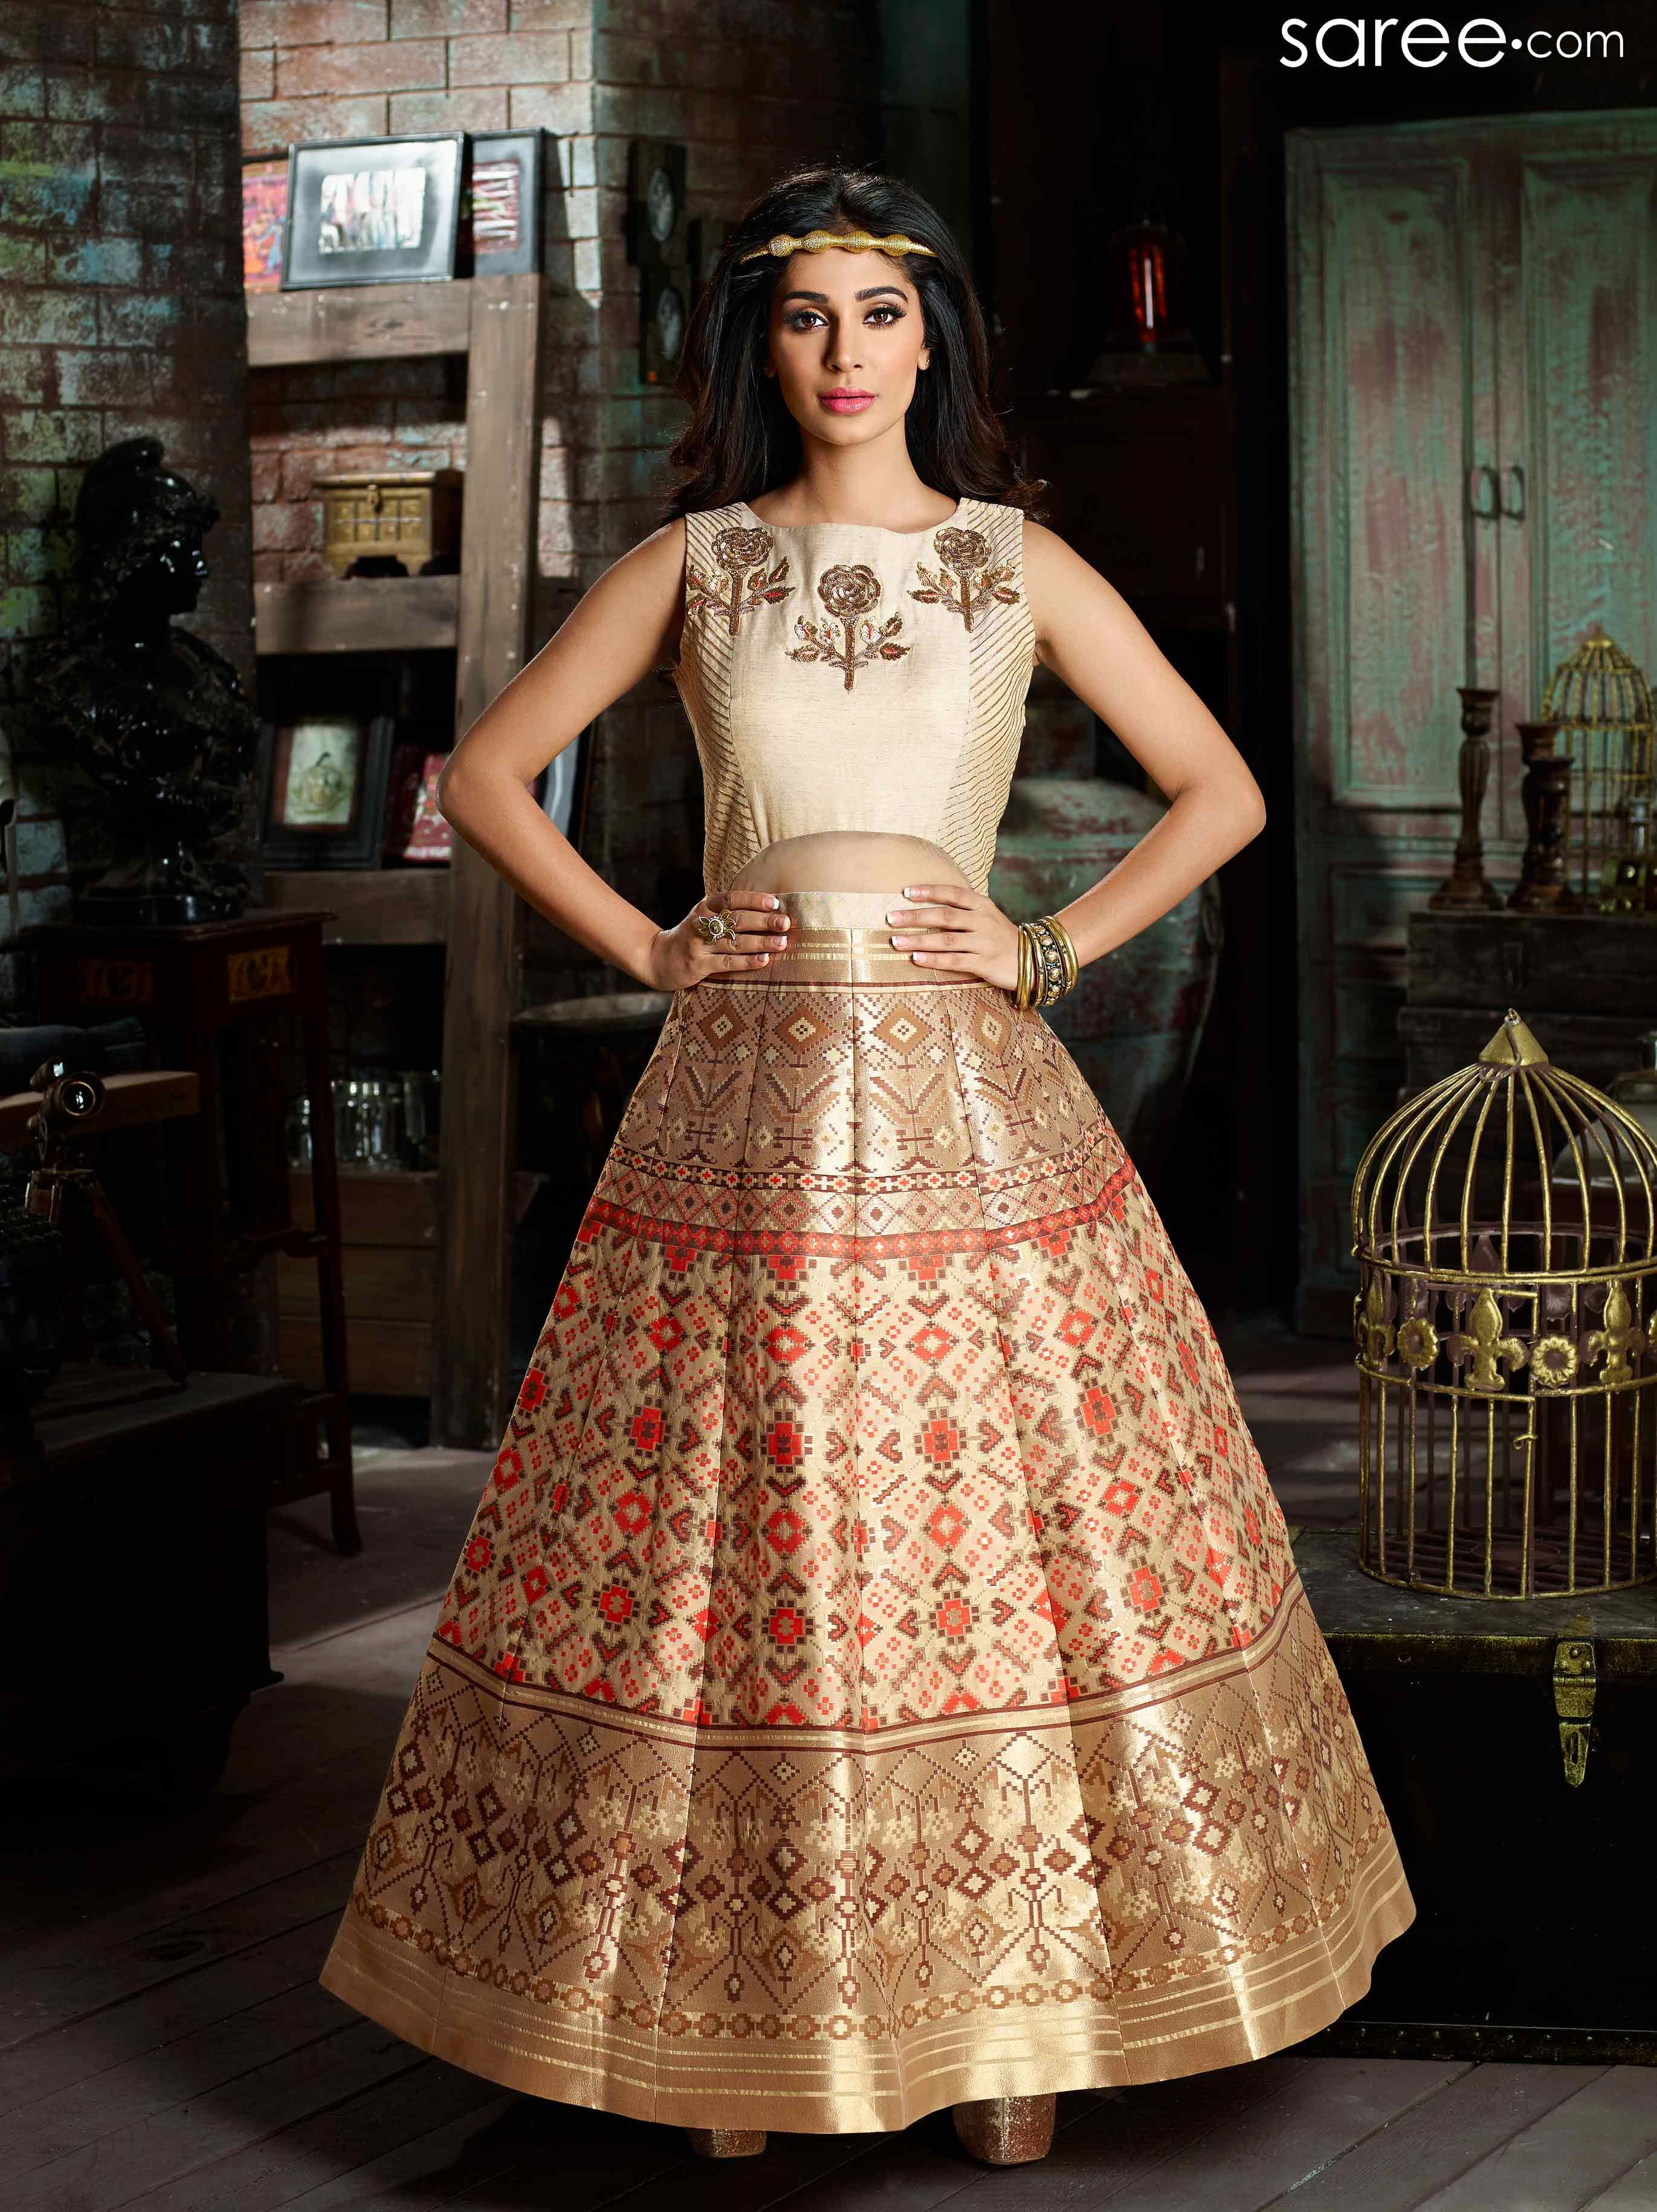 MULTI COLOR BROCADE GOWN WITH ZARI WORK | Indian Indowestern Gowns ...